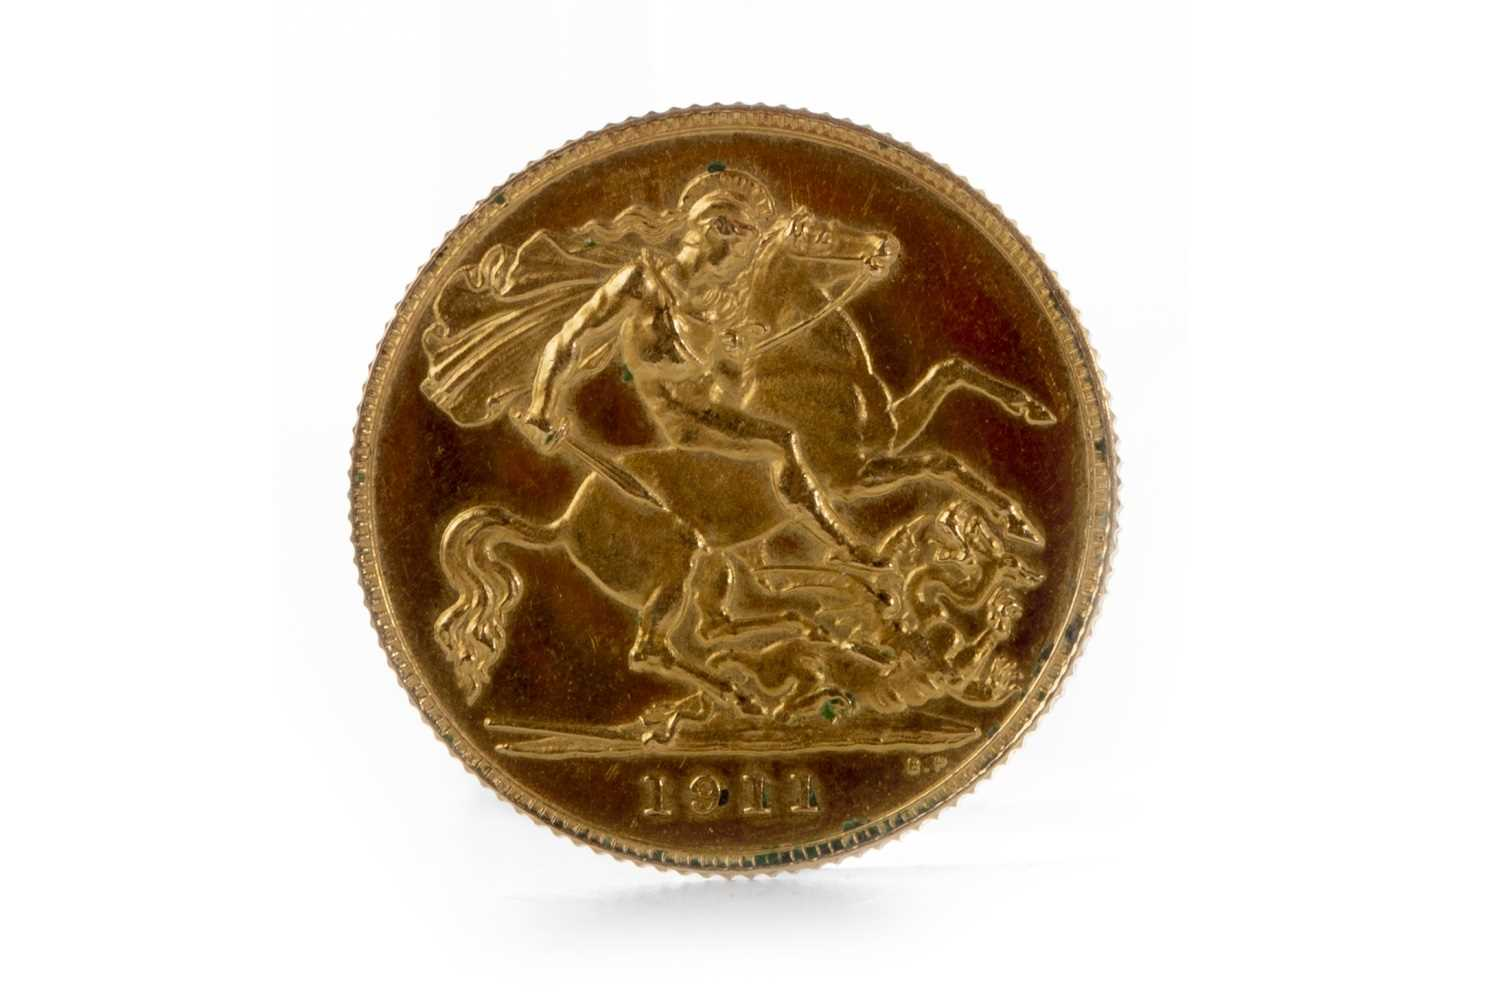 Lot 544 - A GOLD HALF SOVEREIGN, 1911